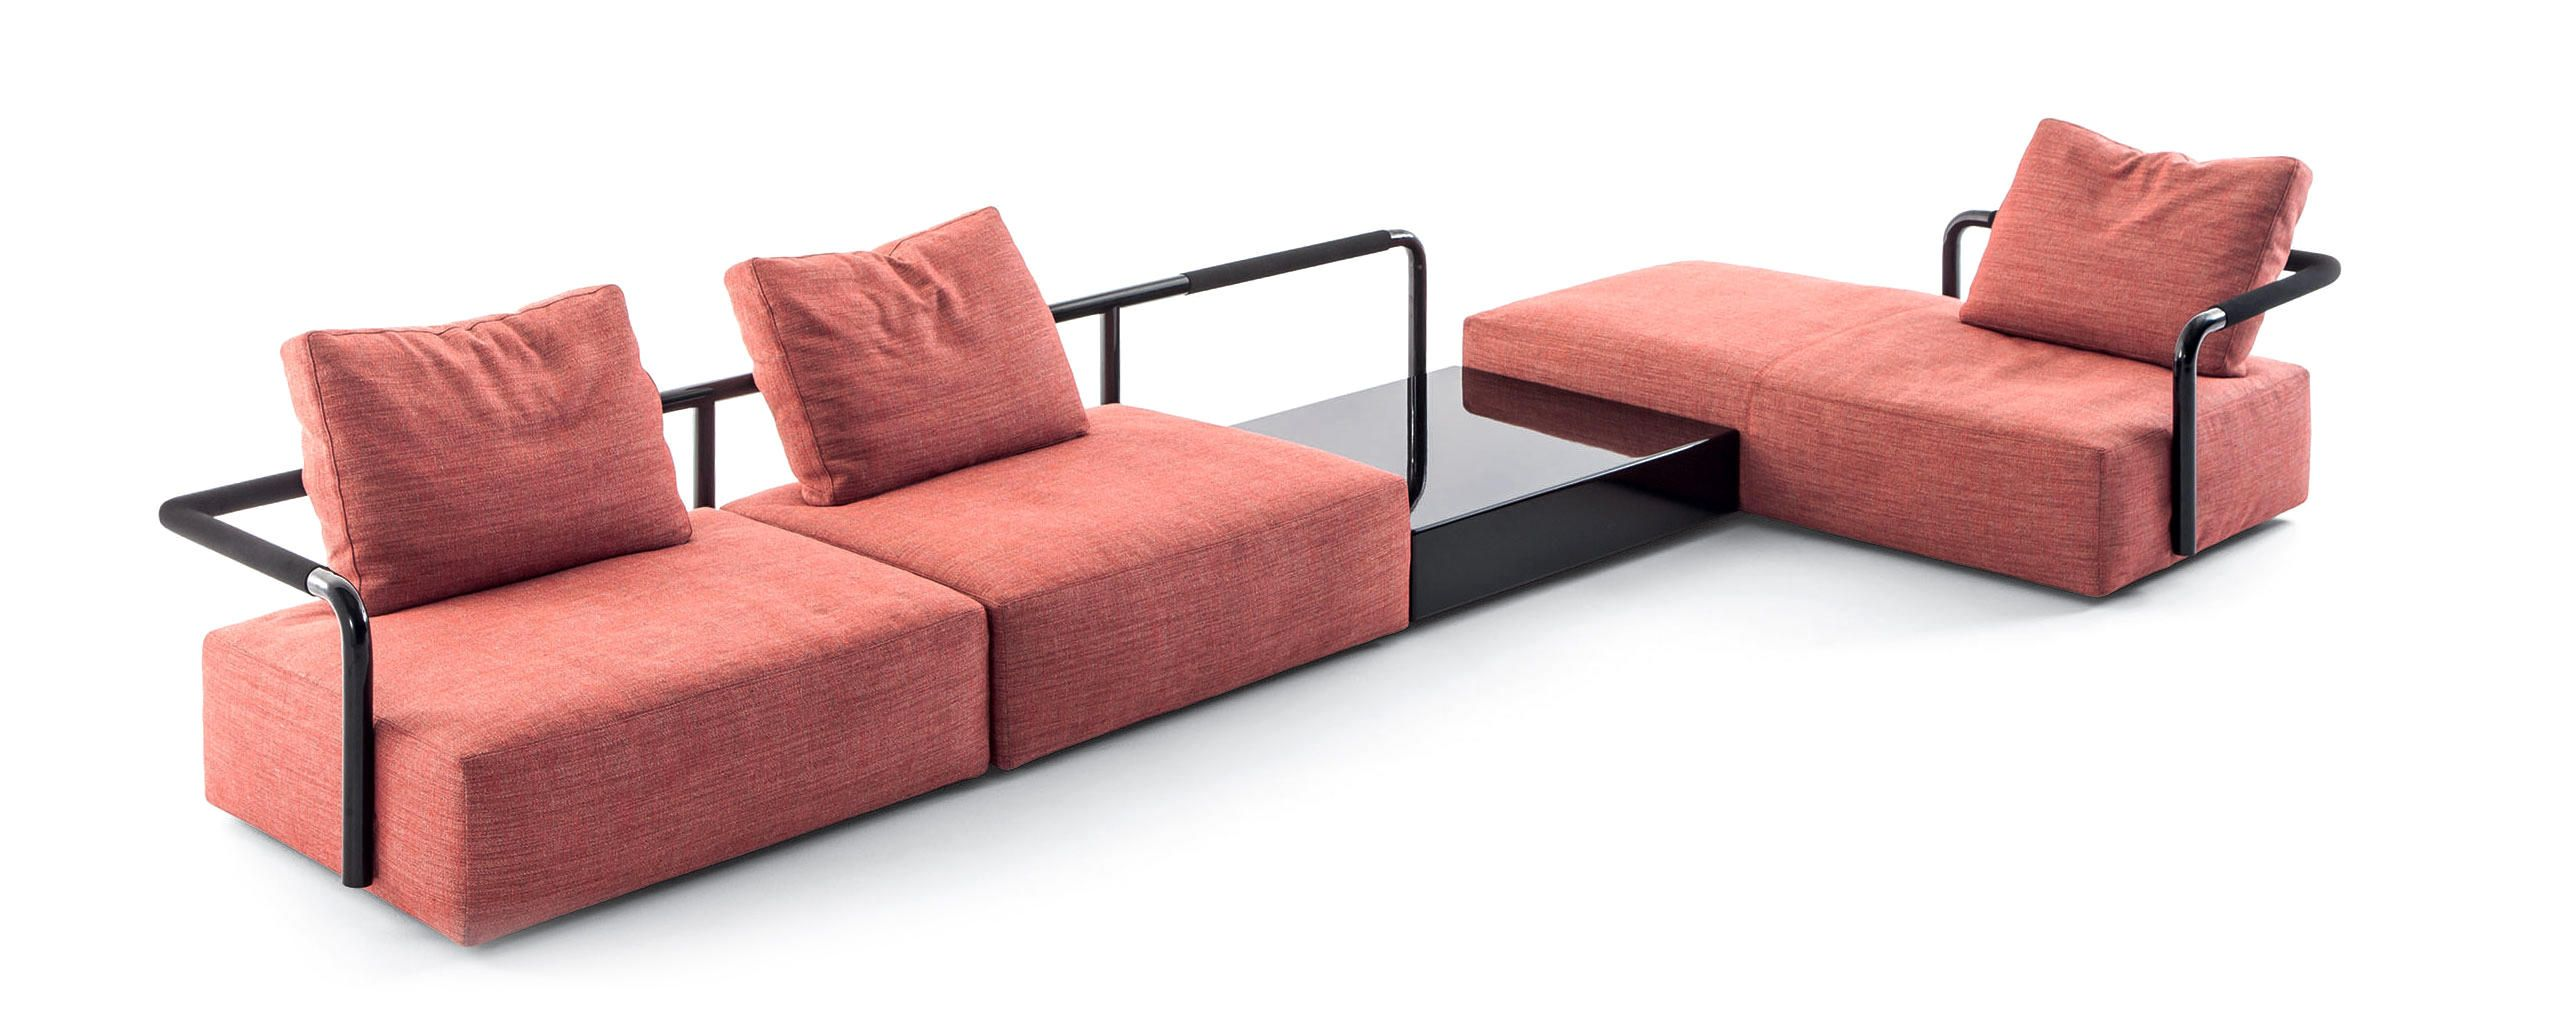 沙发 503 Soft Props Konstantin Grcic Cassina Sofa Design Sofa Sessel Möbel Sofa